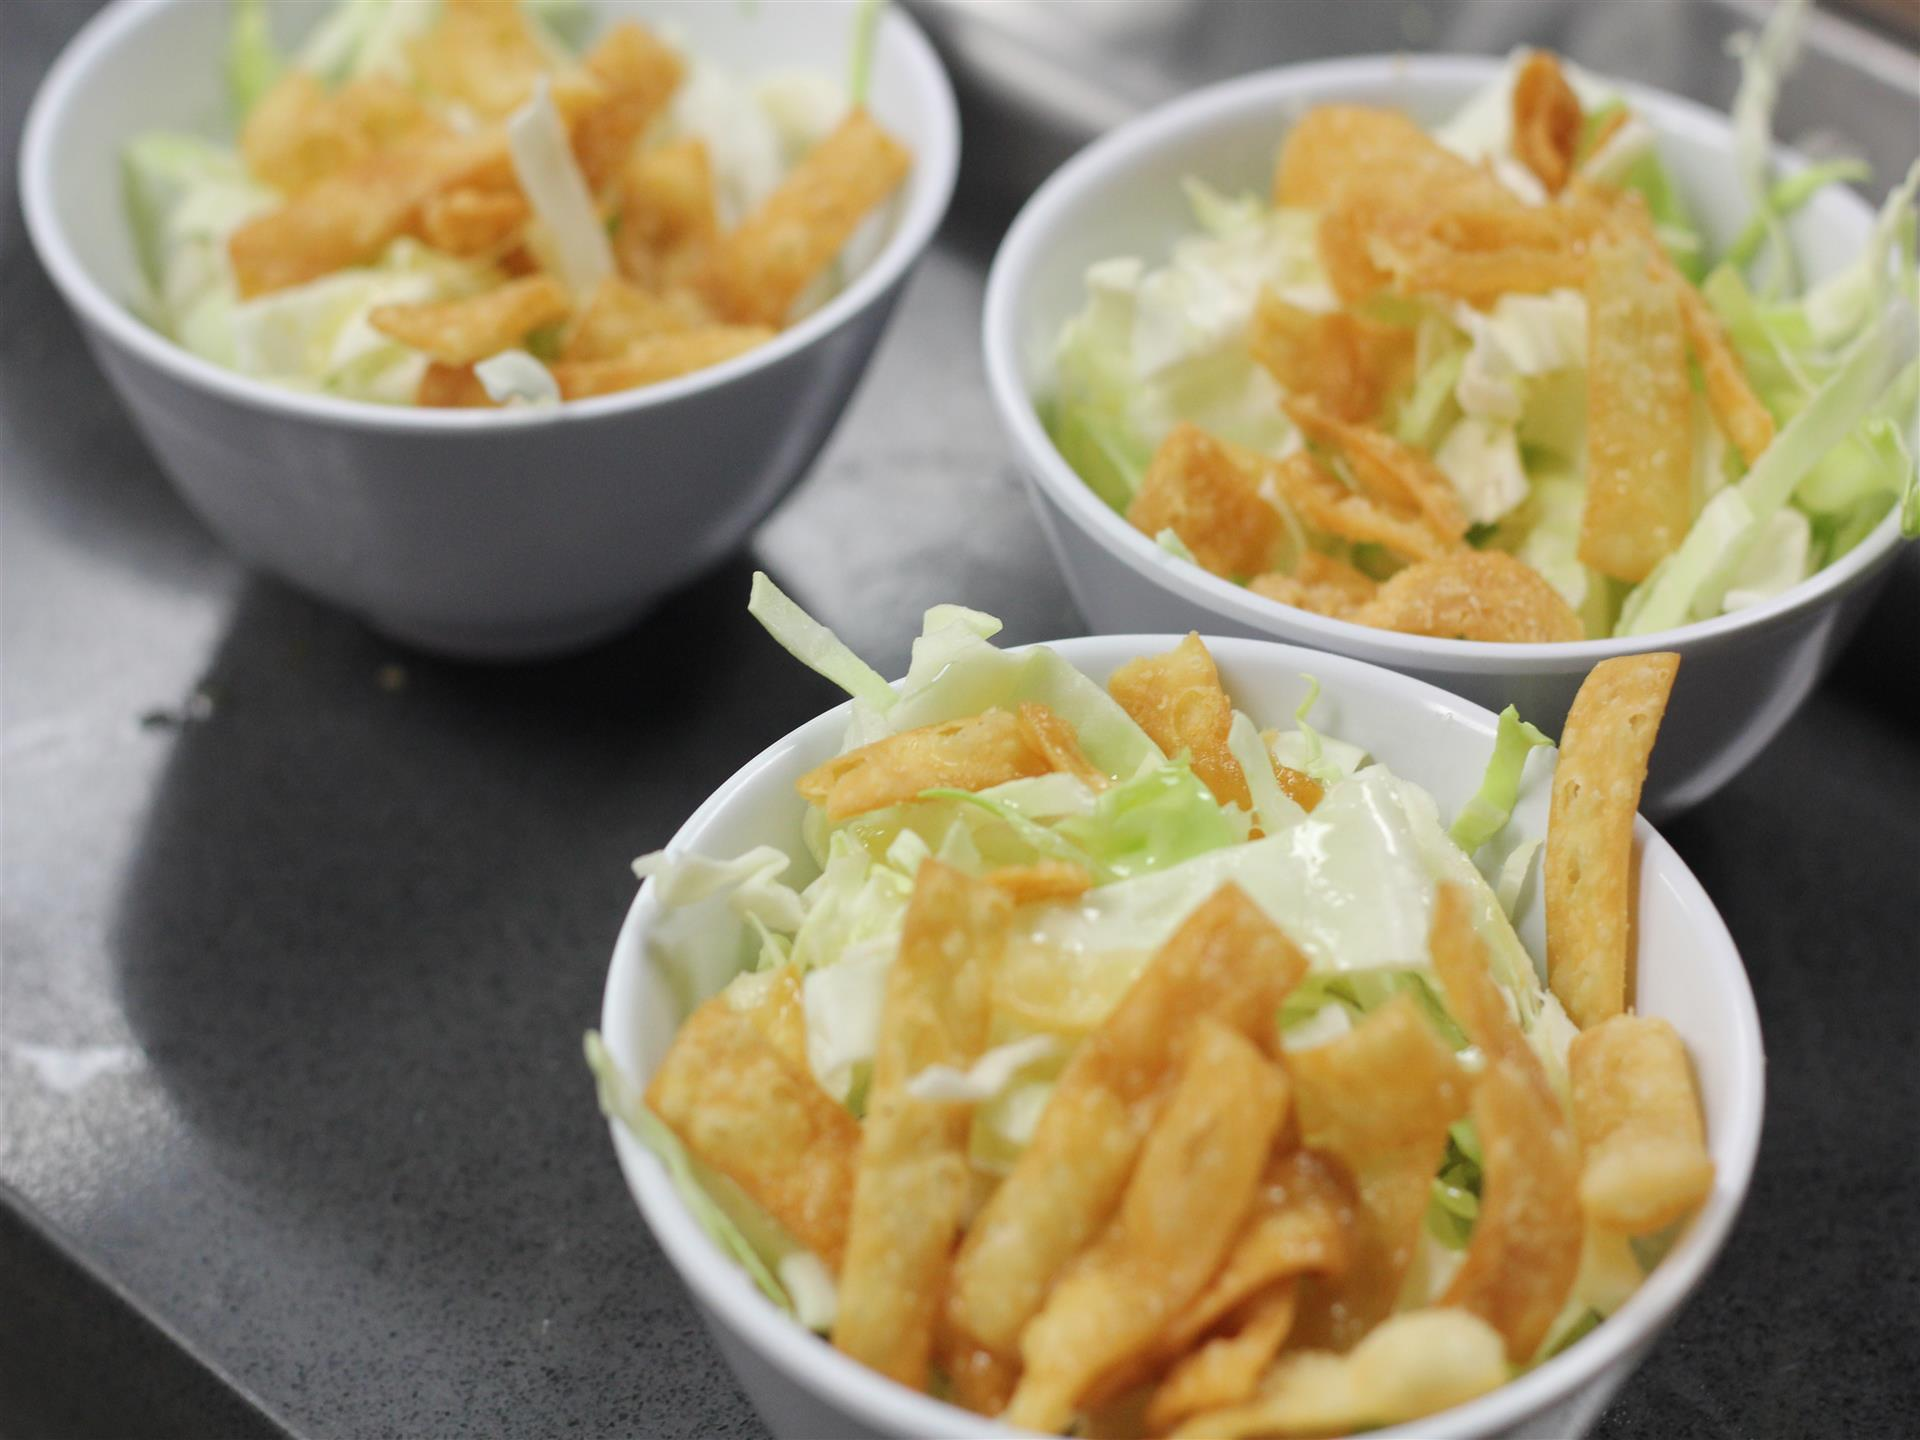 Wontons and lettuce in bowls